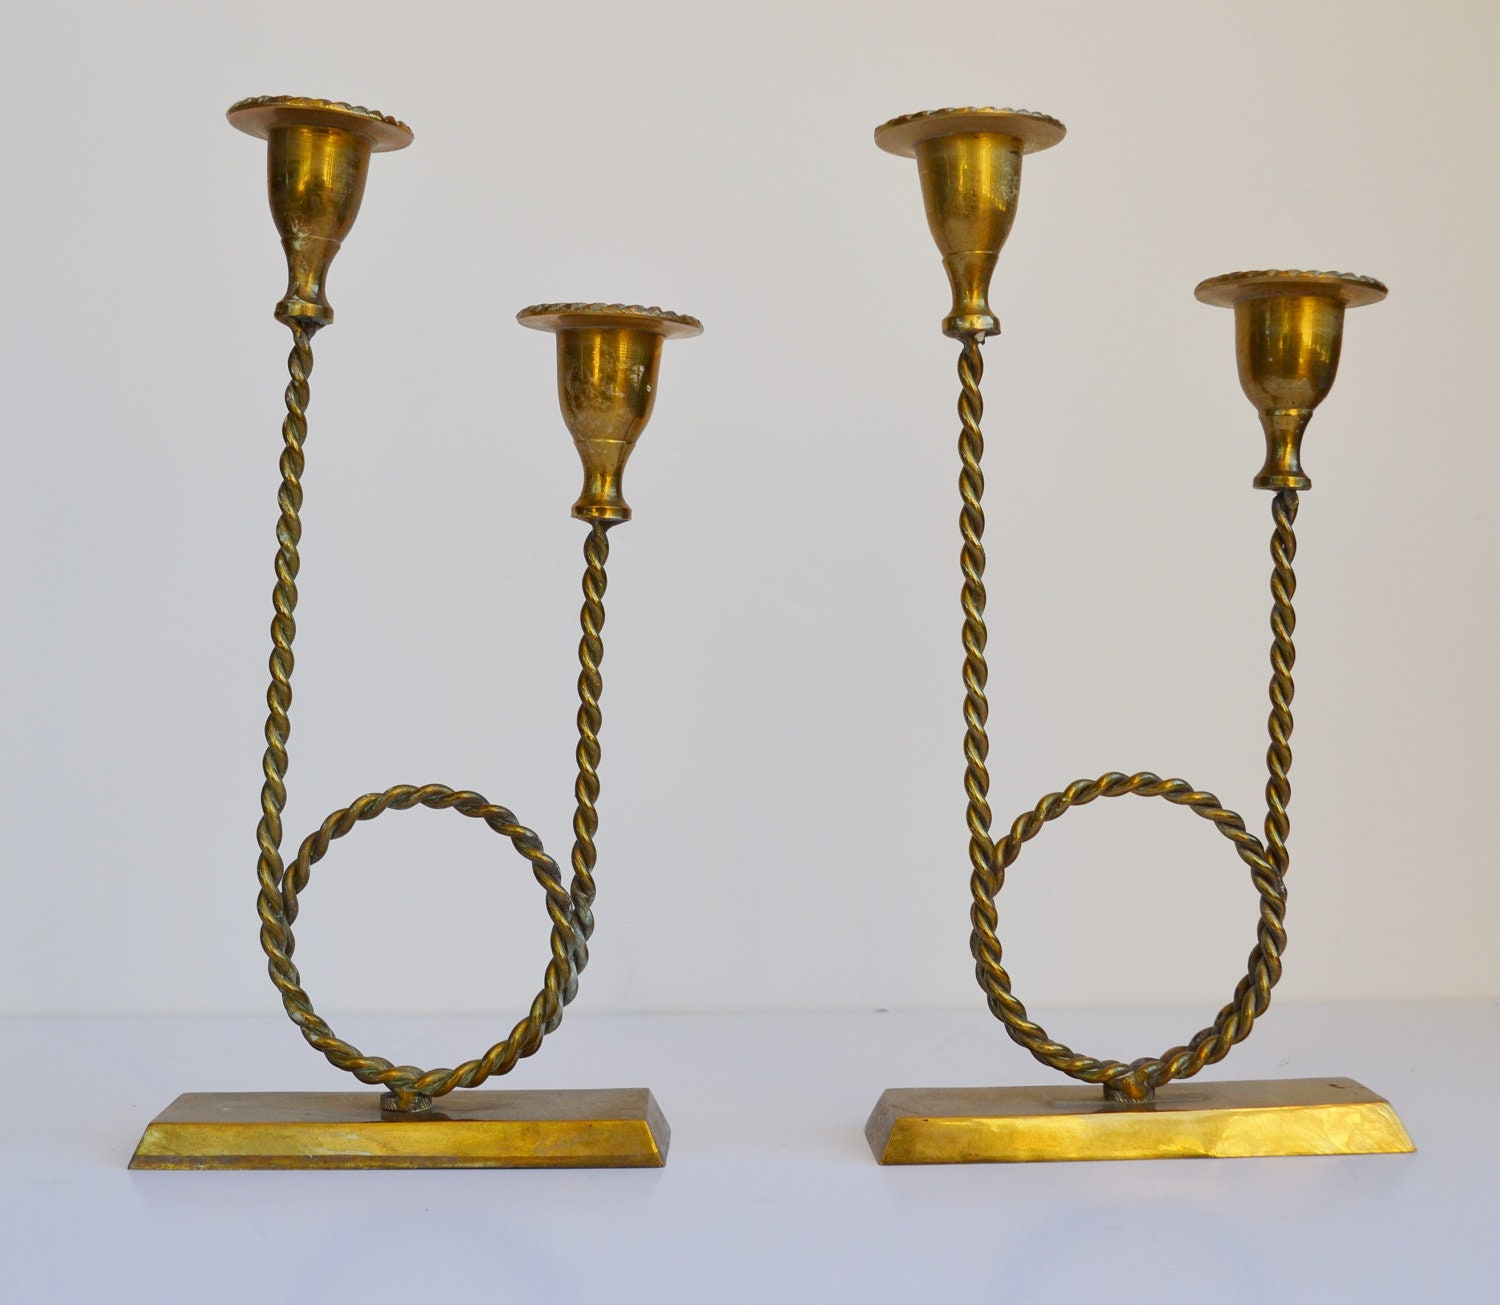 vintage brass rope candle holder candelabra set of 2 mid